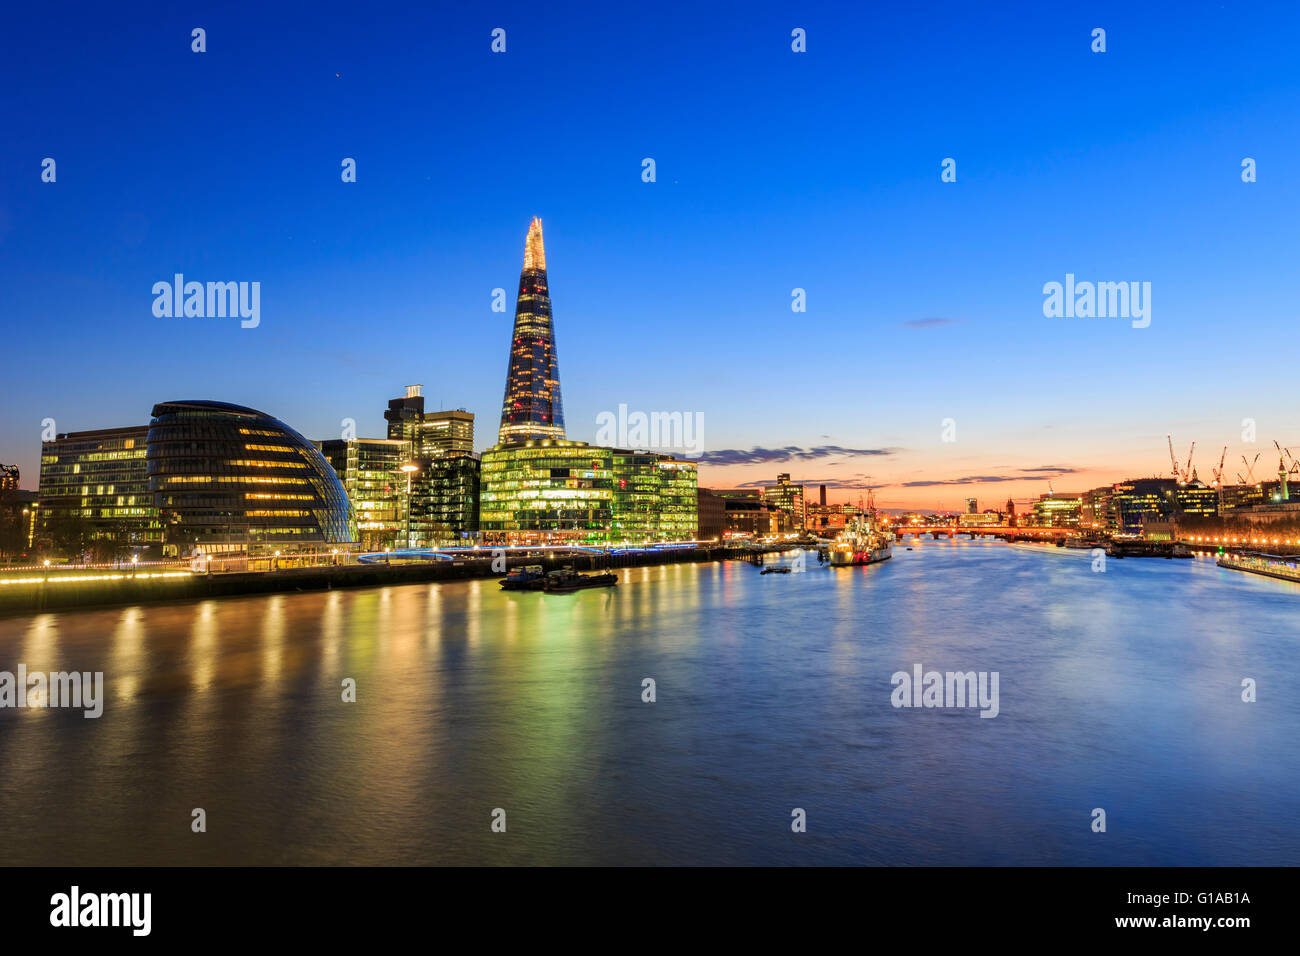 Some nightscape around the Thames River at London, United Kingdom - Stock Image